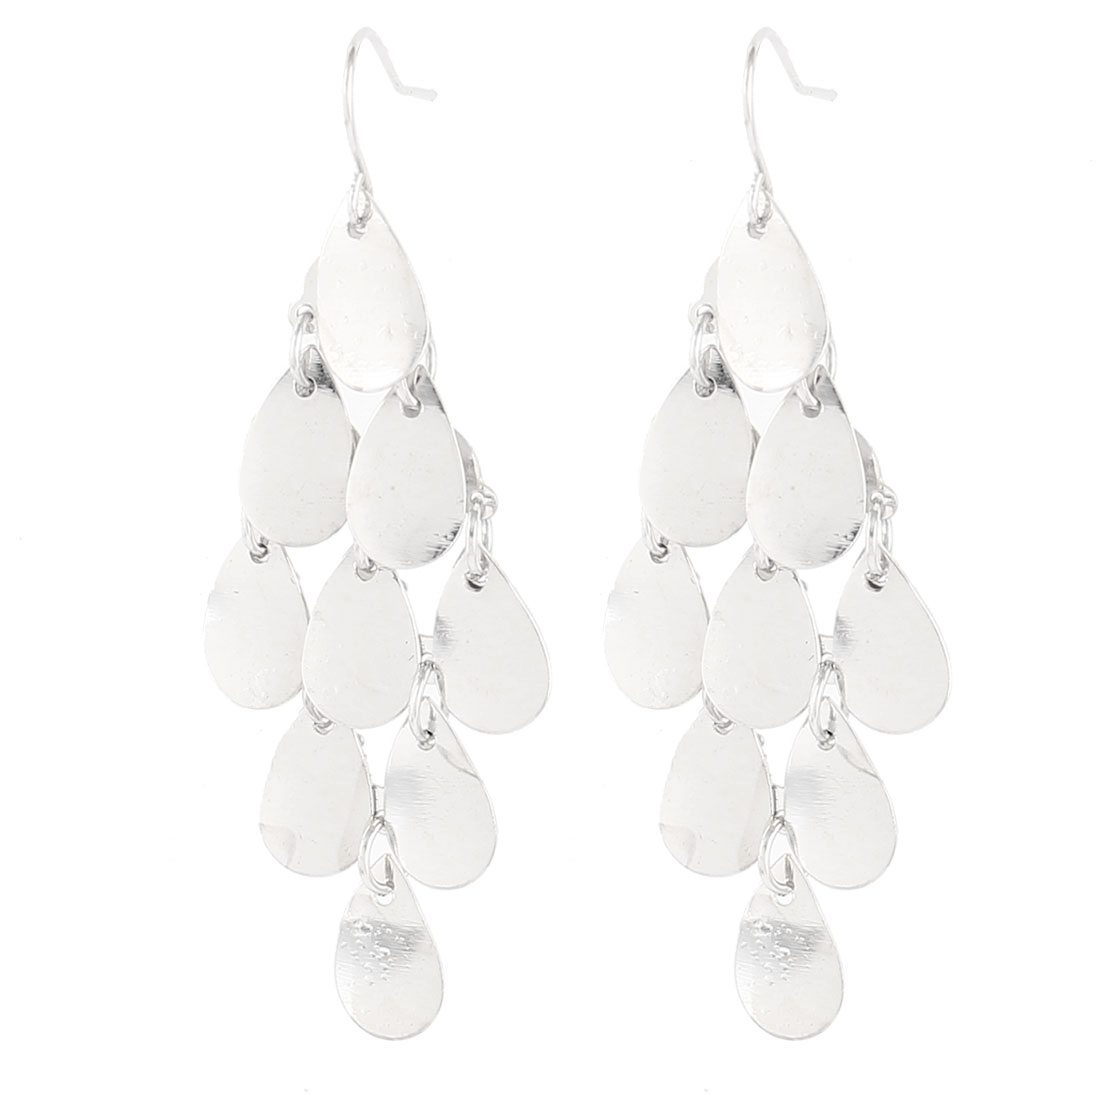 Pair Silver Tone Leaf Shape Hanging Dangling Earrings Ear Rings for Women